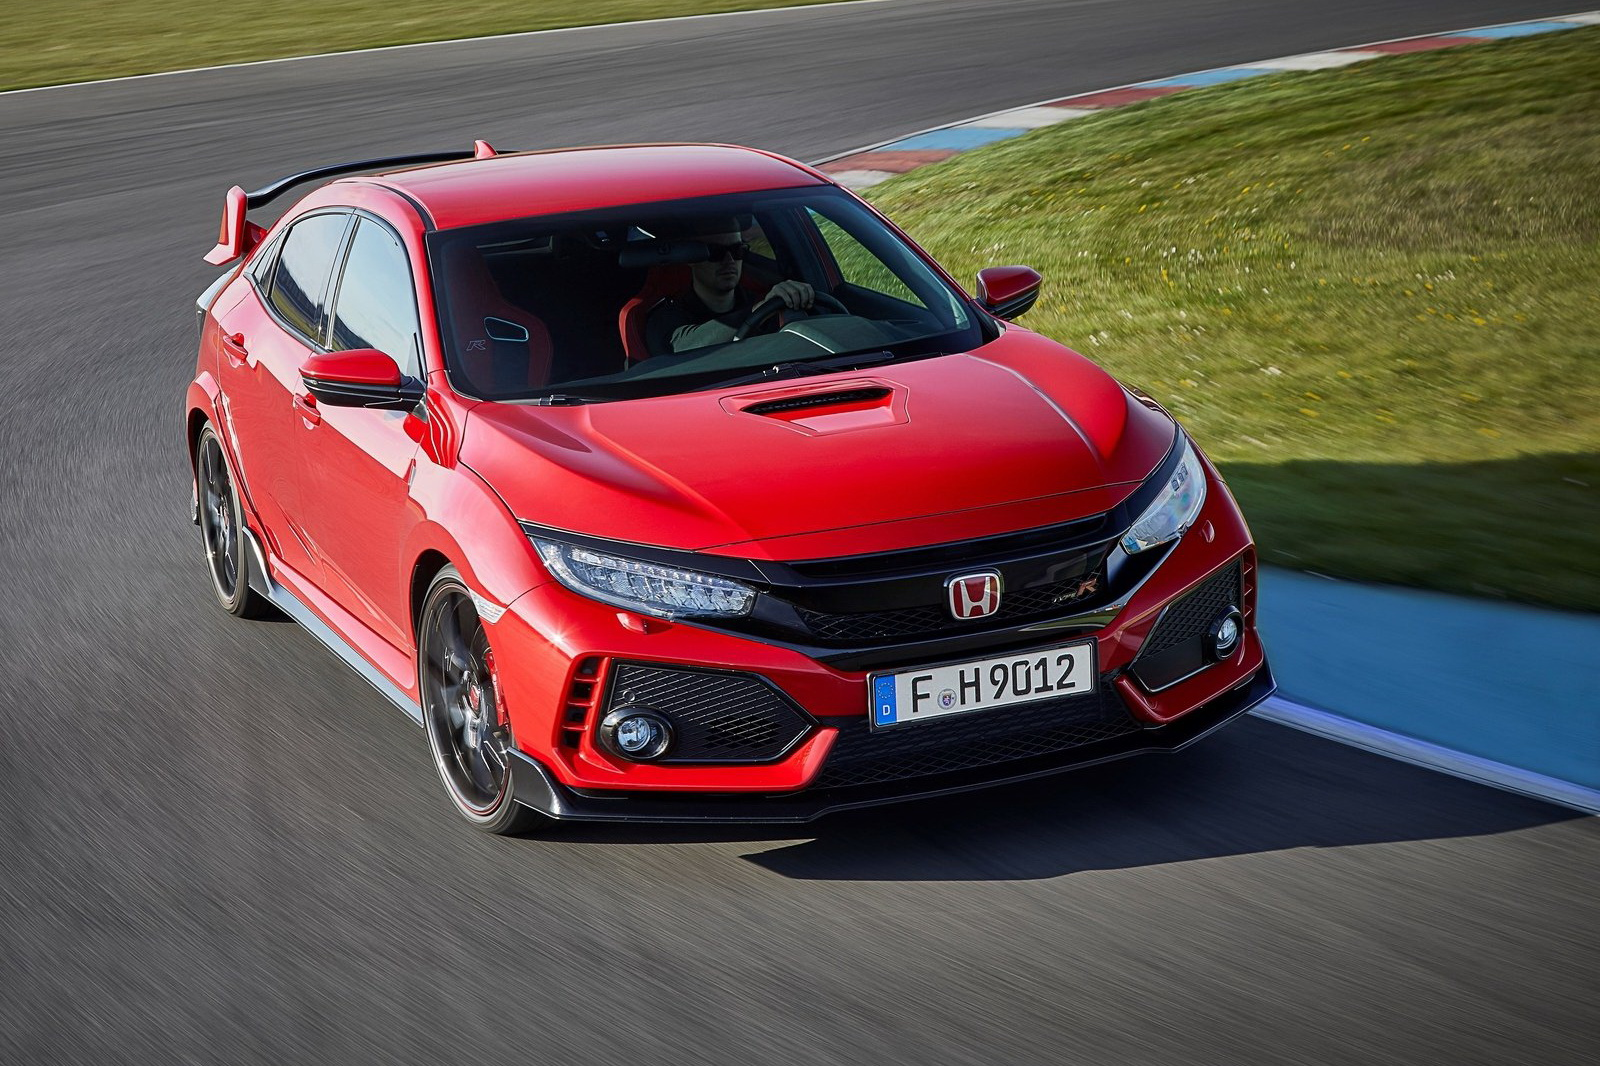 Honda-Civic_Type_R-2018-1600-10.jpg